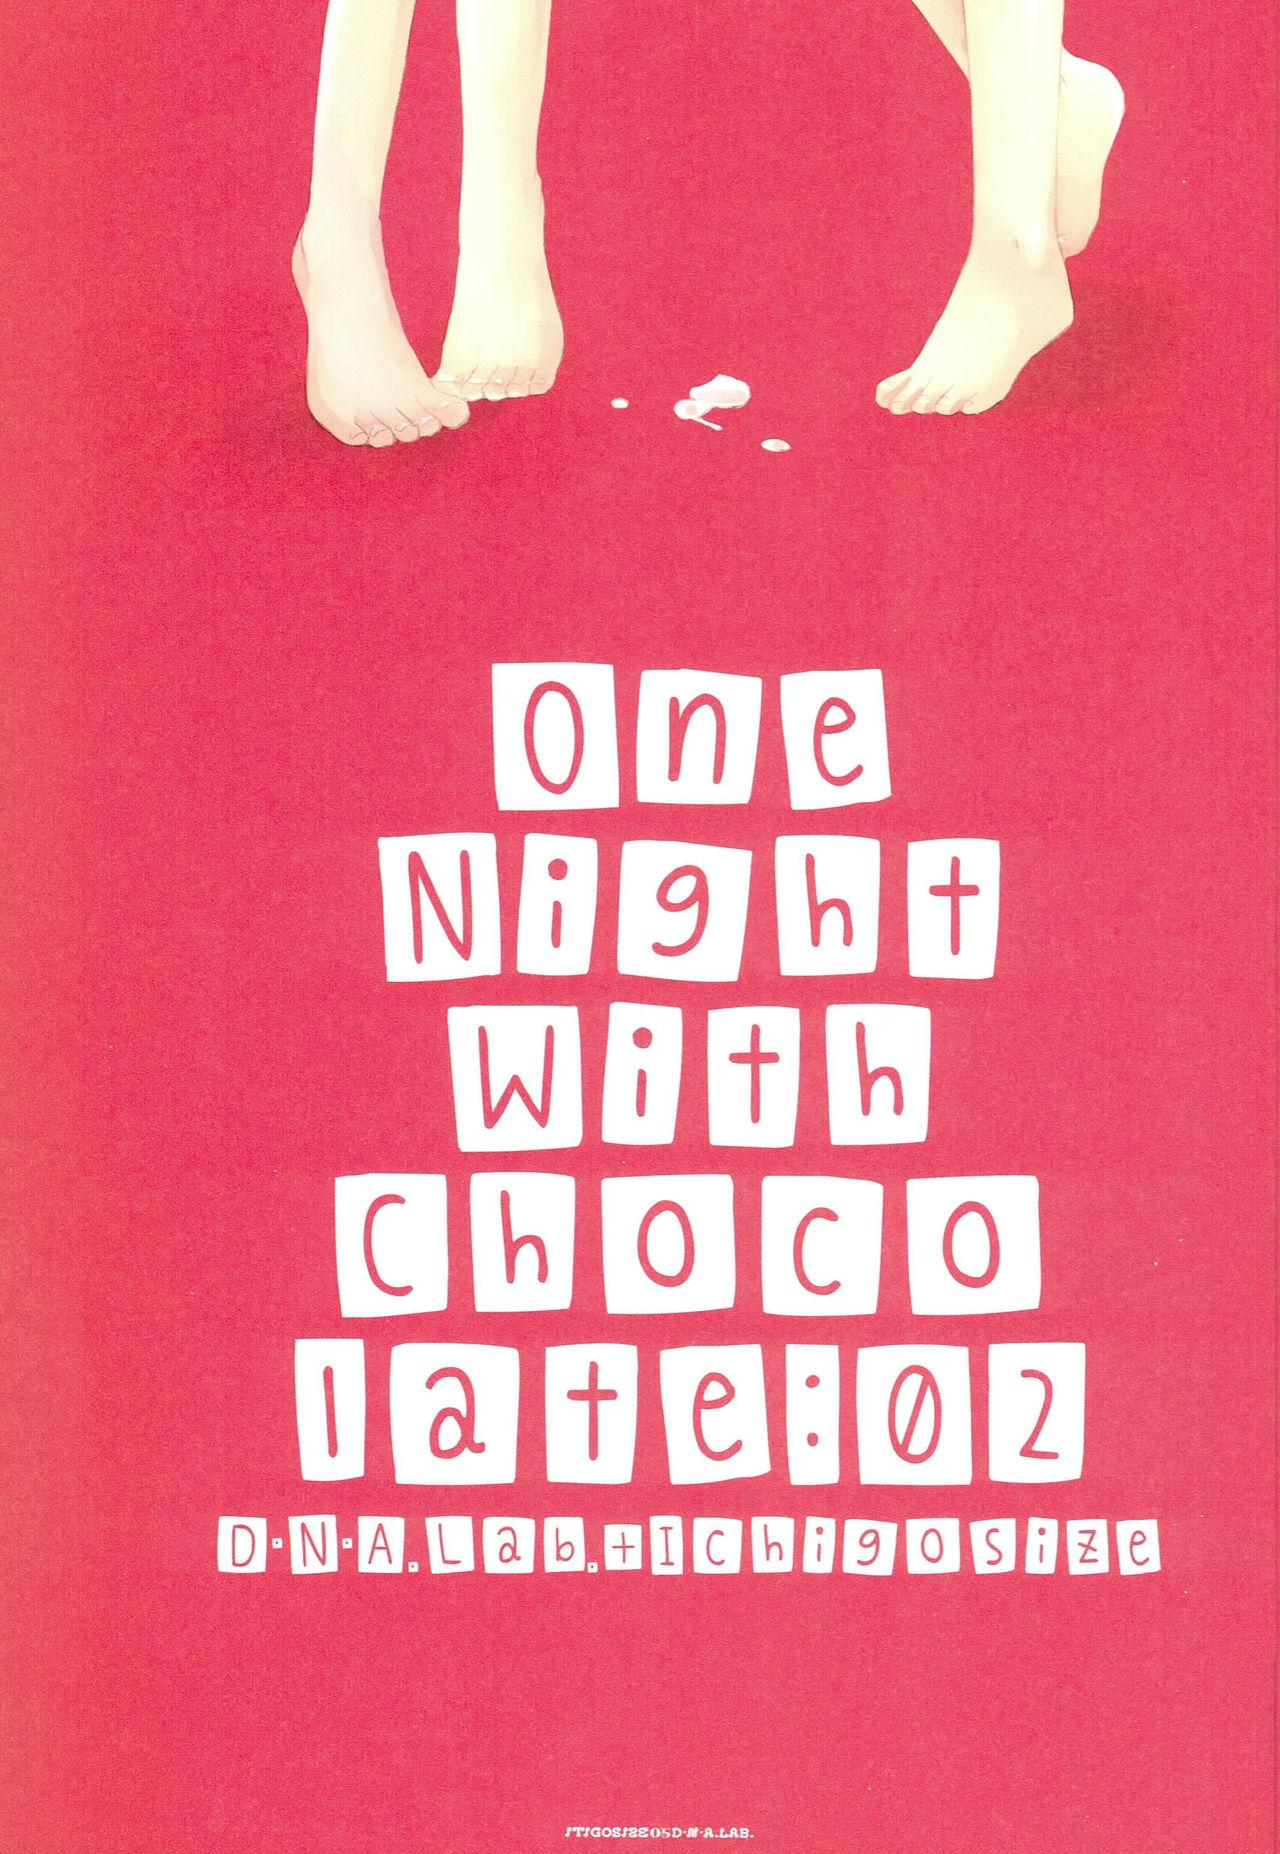 ONE NIGHT WITH CHOCOLATE2 3